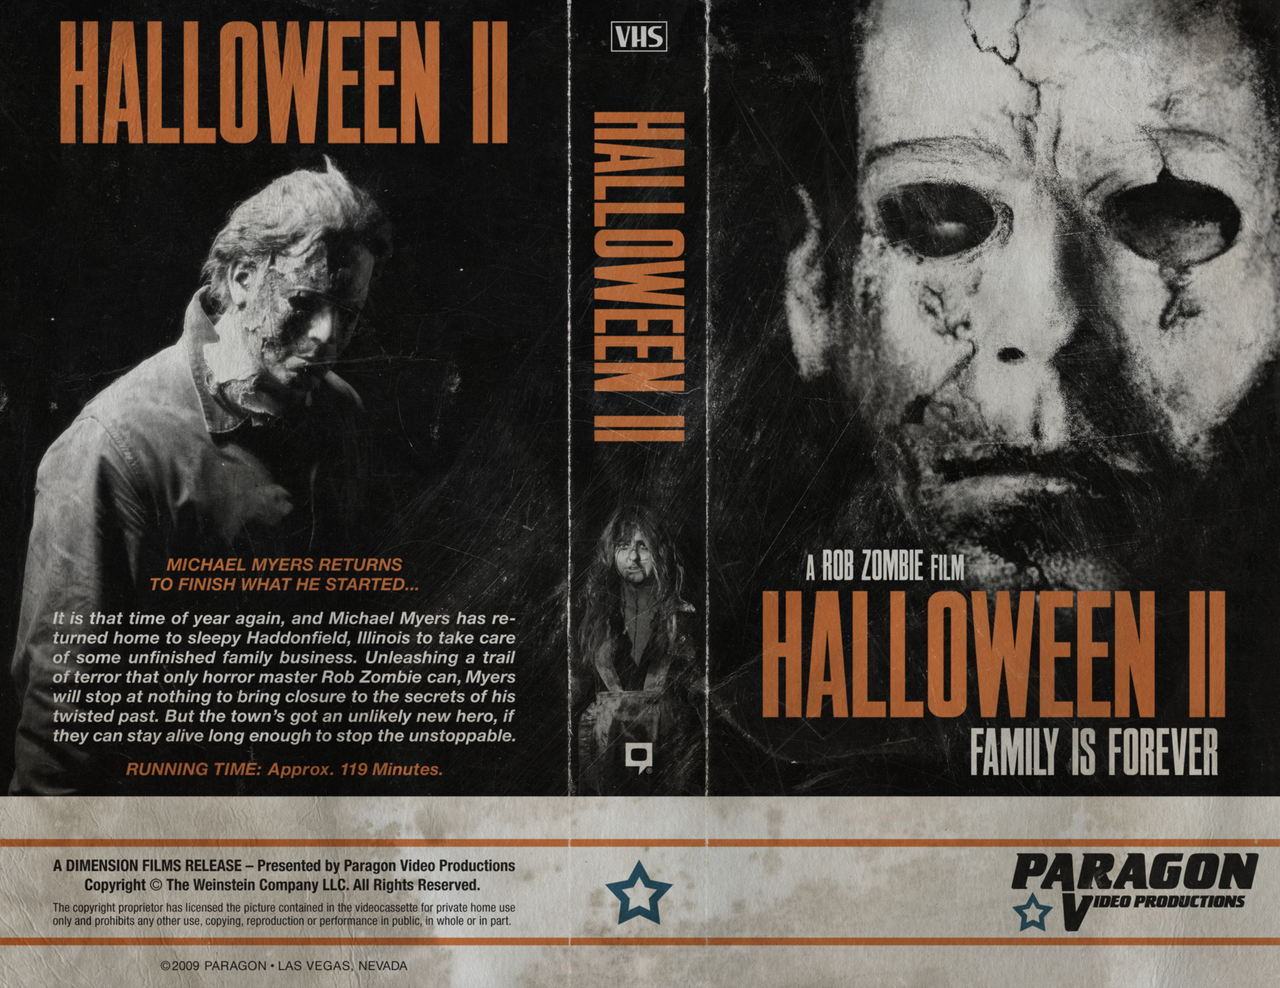 The Horrors of Halloween: HALLOWEEN 2 (2009) VHS, DVD and Blu-ray Covers